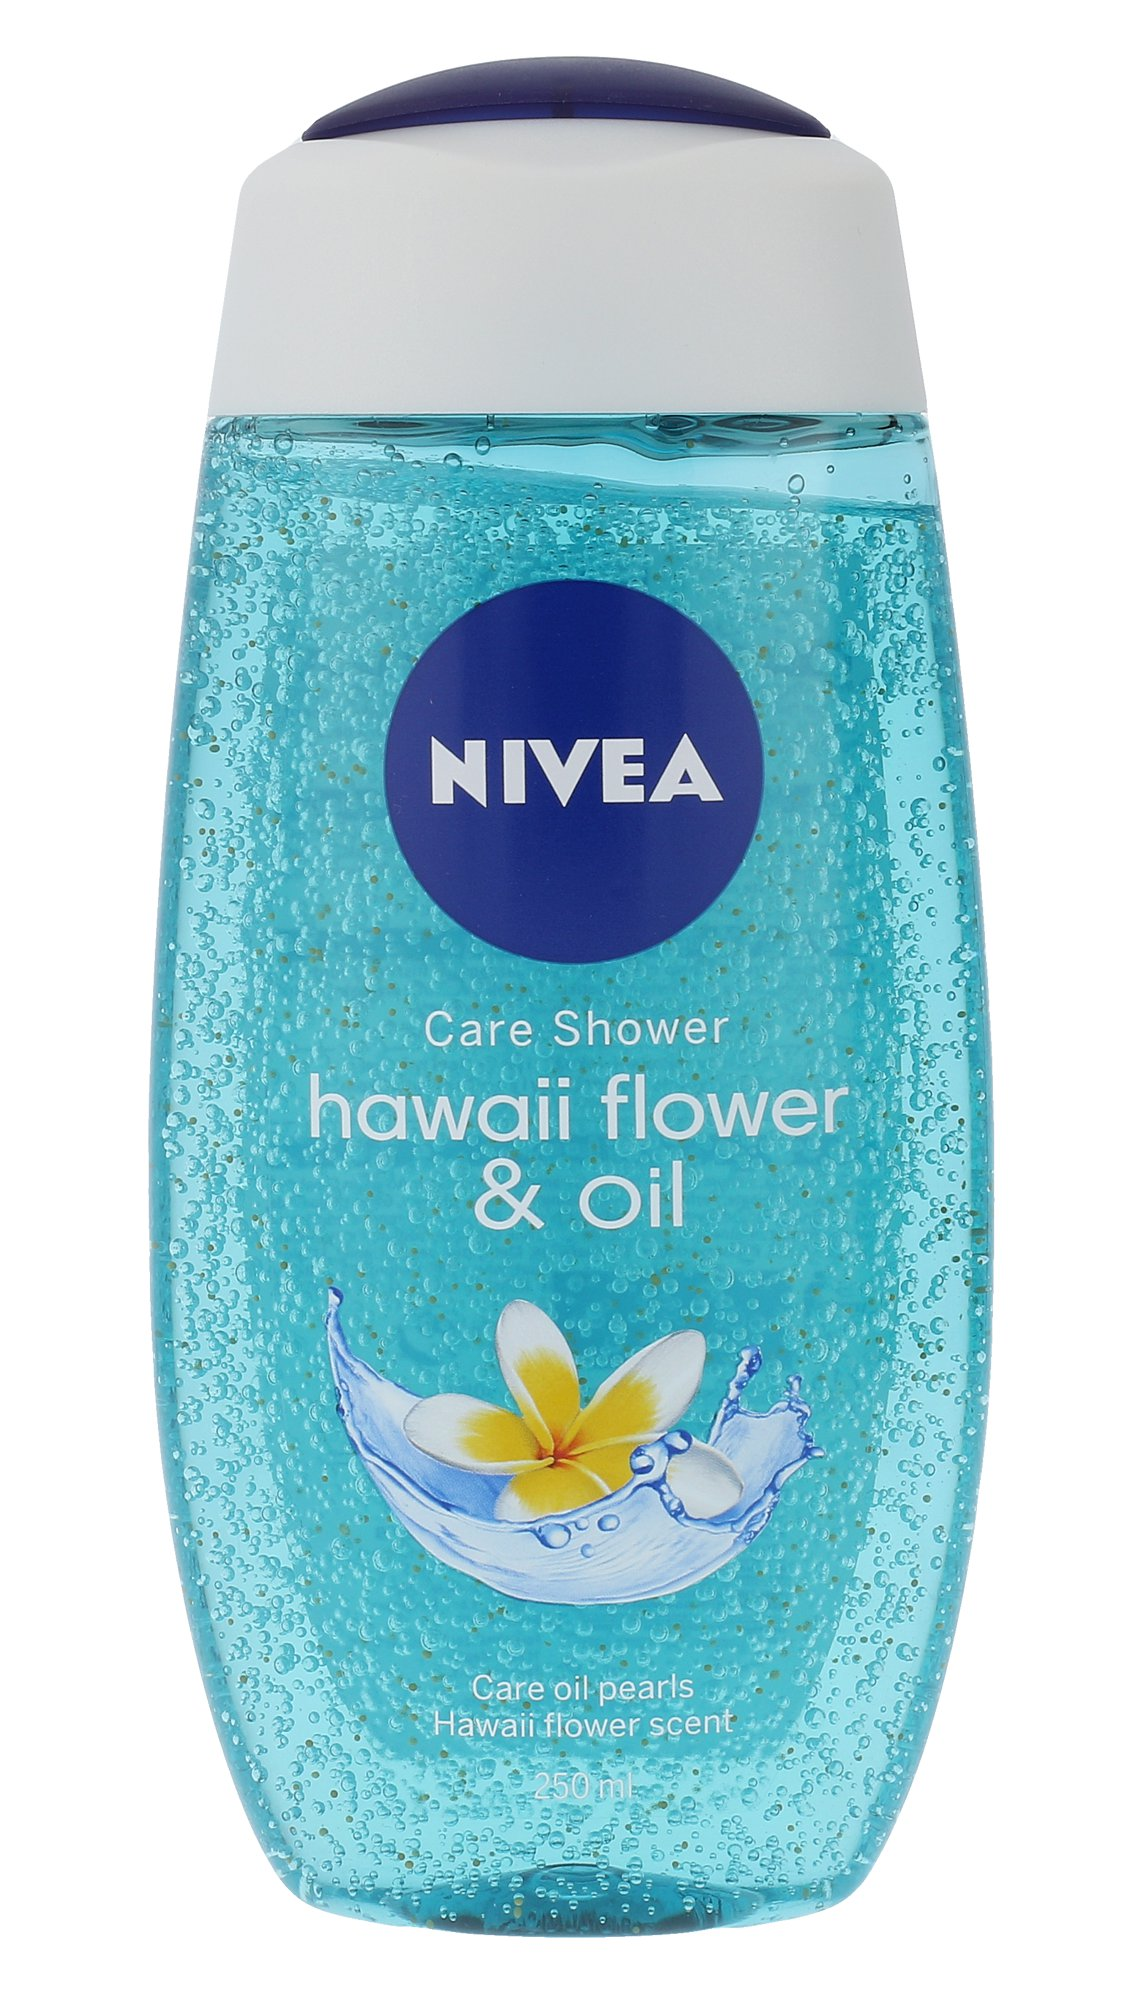 Nivea Hawaii Flower & Oil, tusfürdő gél 250ml